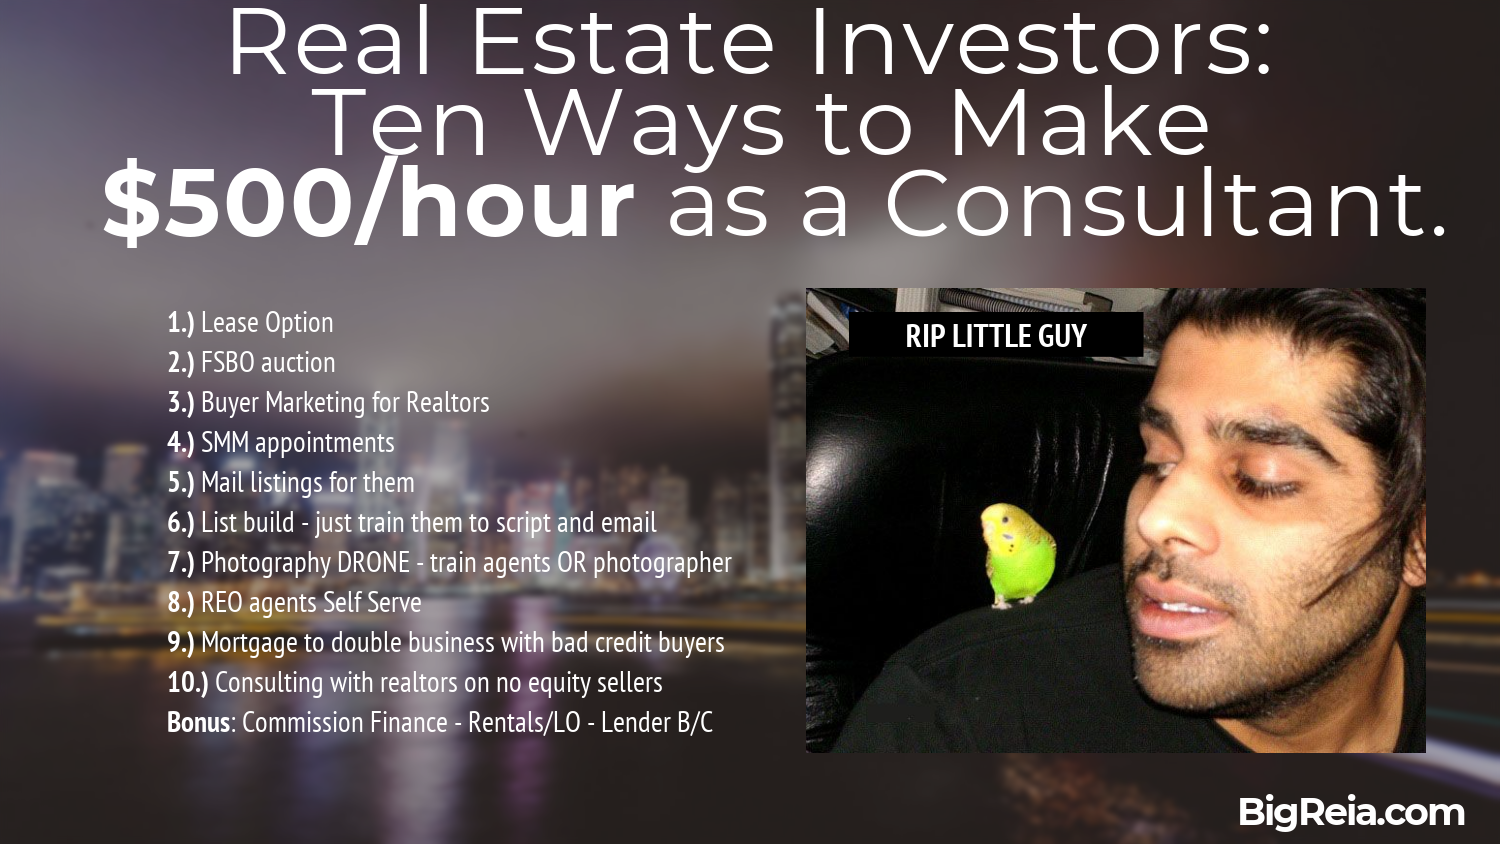 Become a 500 an hour real estate consultant.